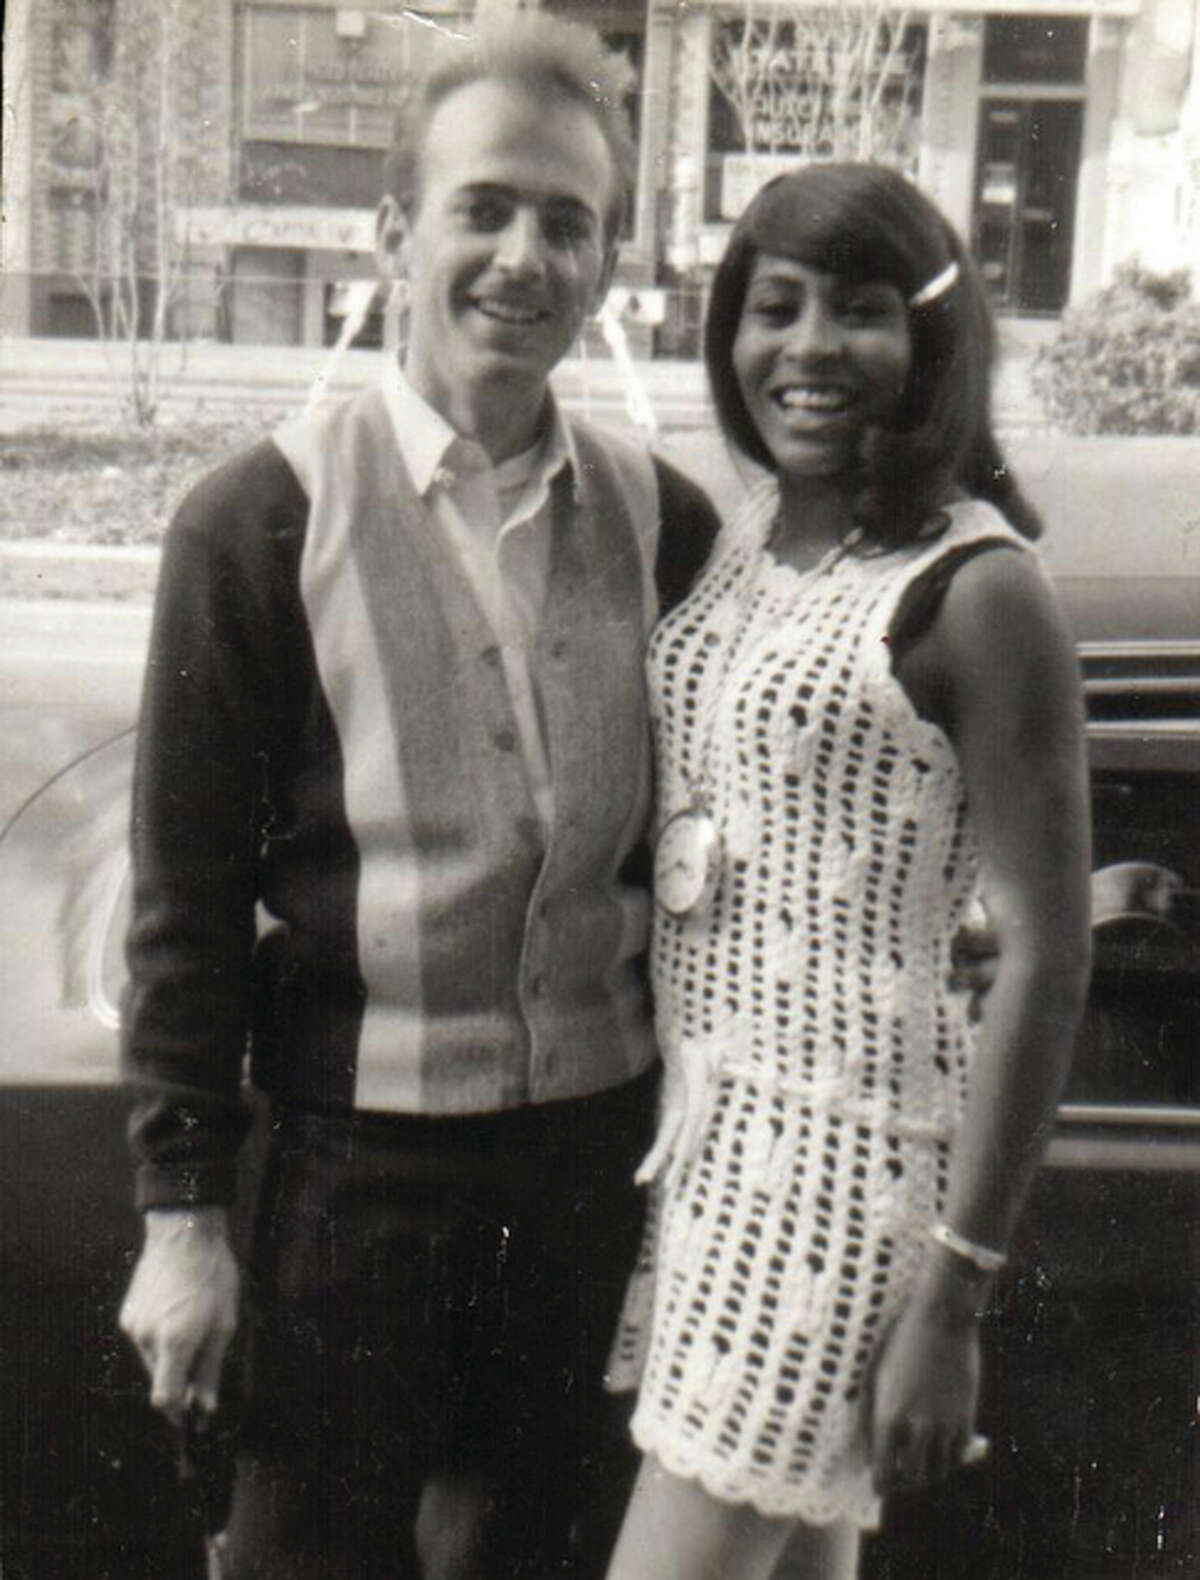 Circa 1965: South Roxana's Herb Sadler with Tina Turner in Washington D.C. The legendary session and Ike & Tina Turner Revue guitarist toured with the Turners for approximately 13 years, playing with many defining artists of the era. Sadler associated with Ike Turner through his death in 2007.